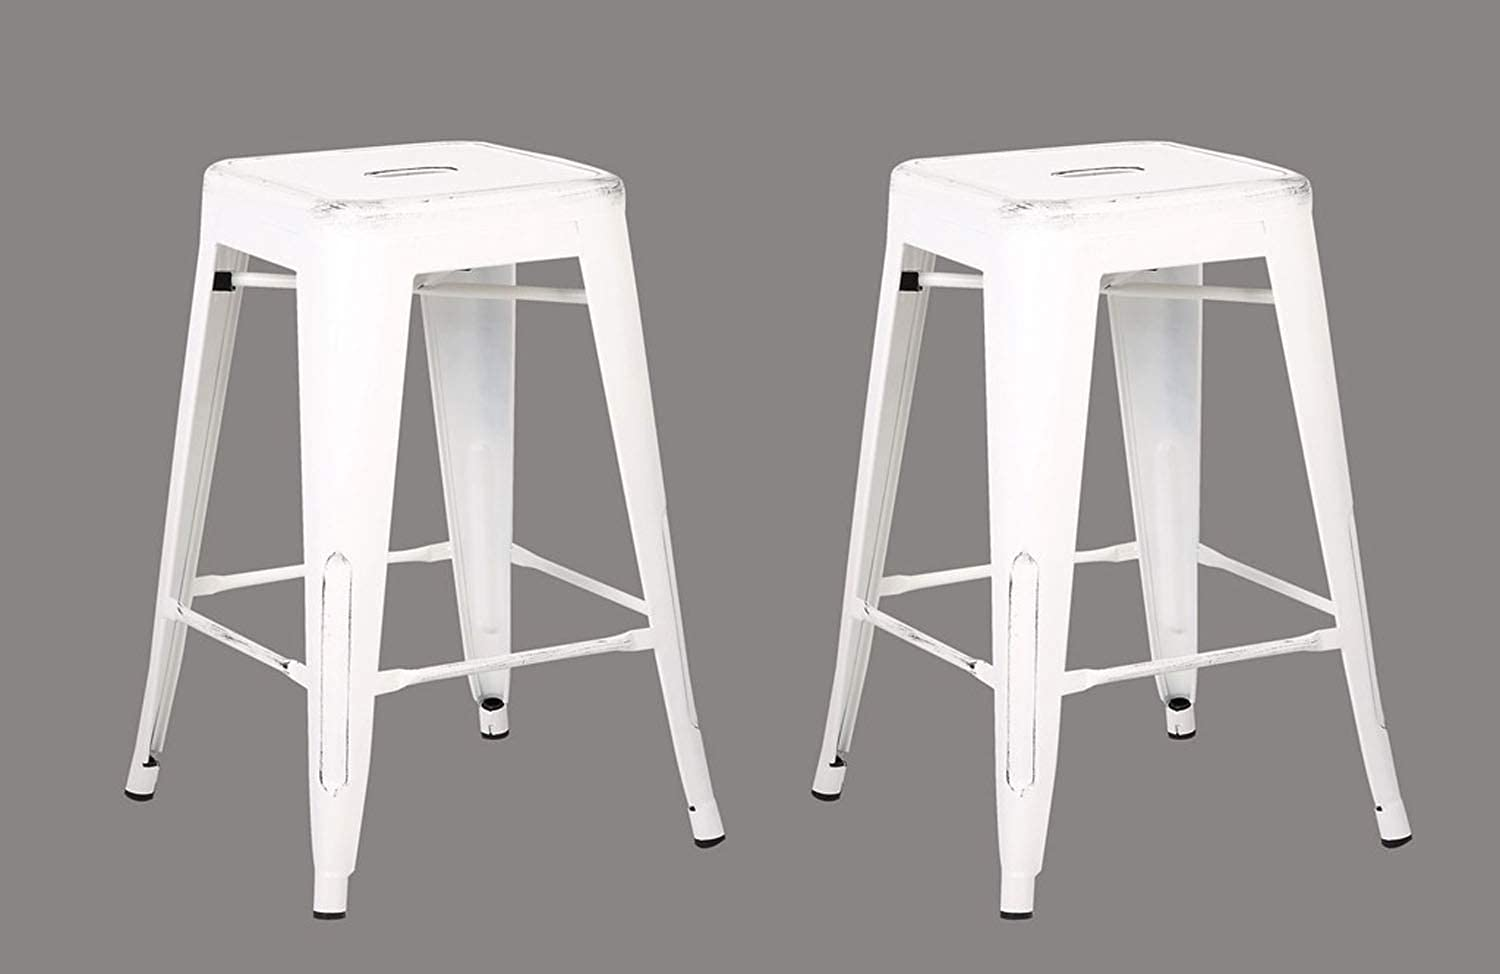 Home Roots Furniture 24  H Distressed Metal Backless Barstool, White - Set of 2